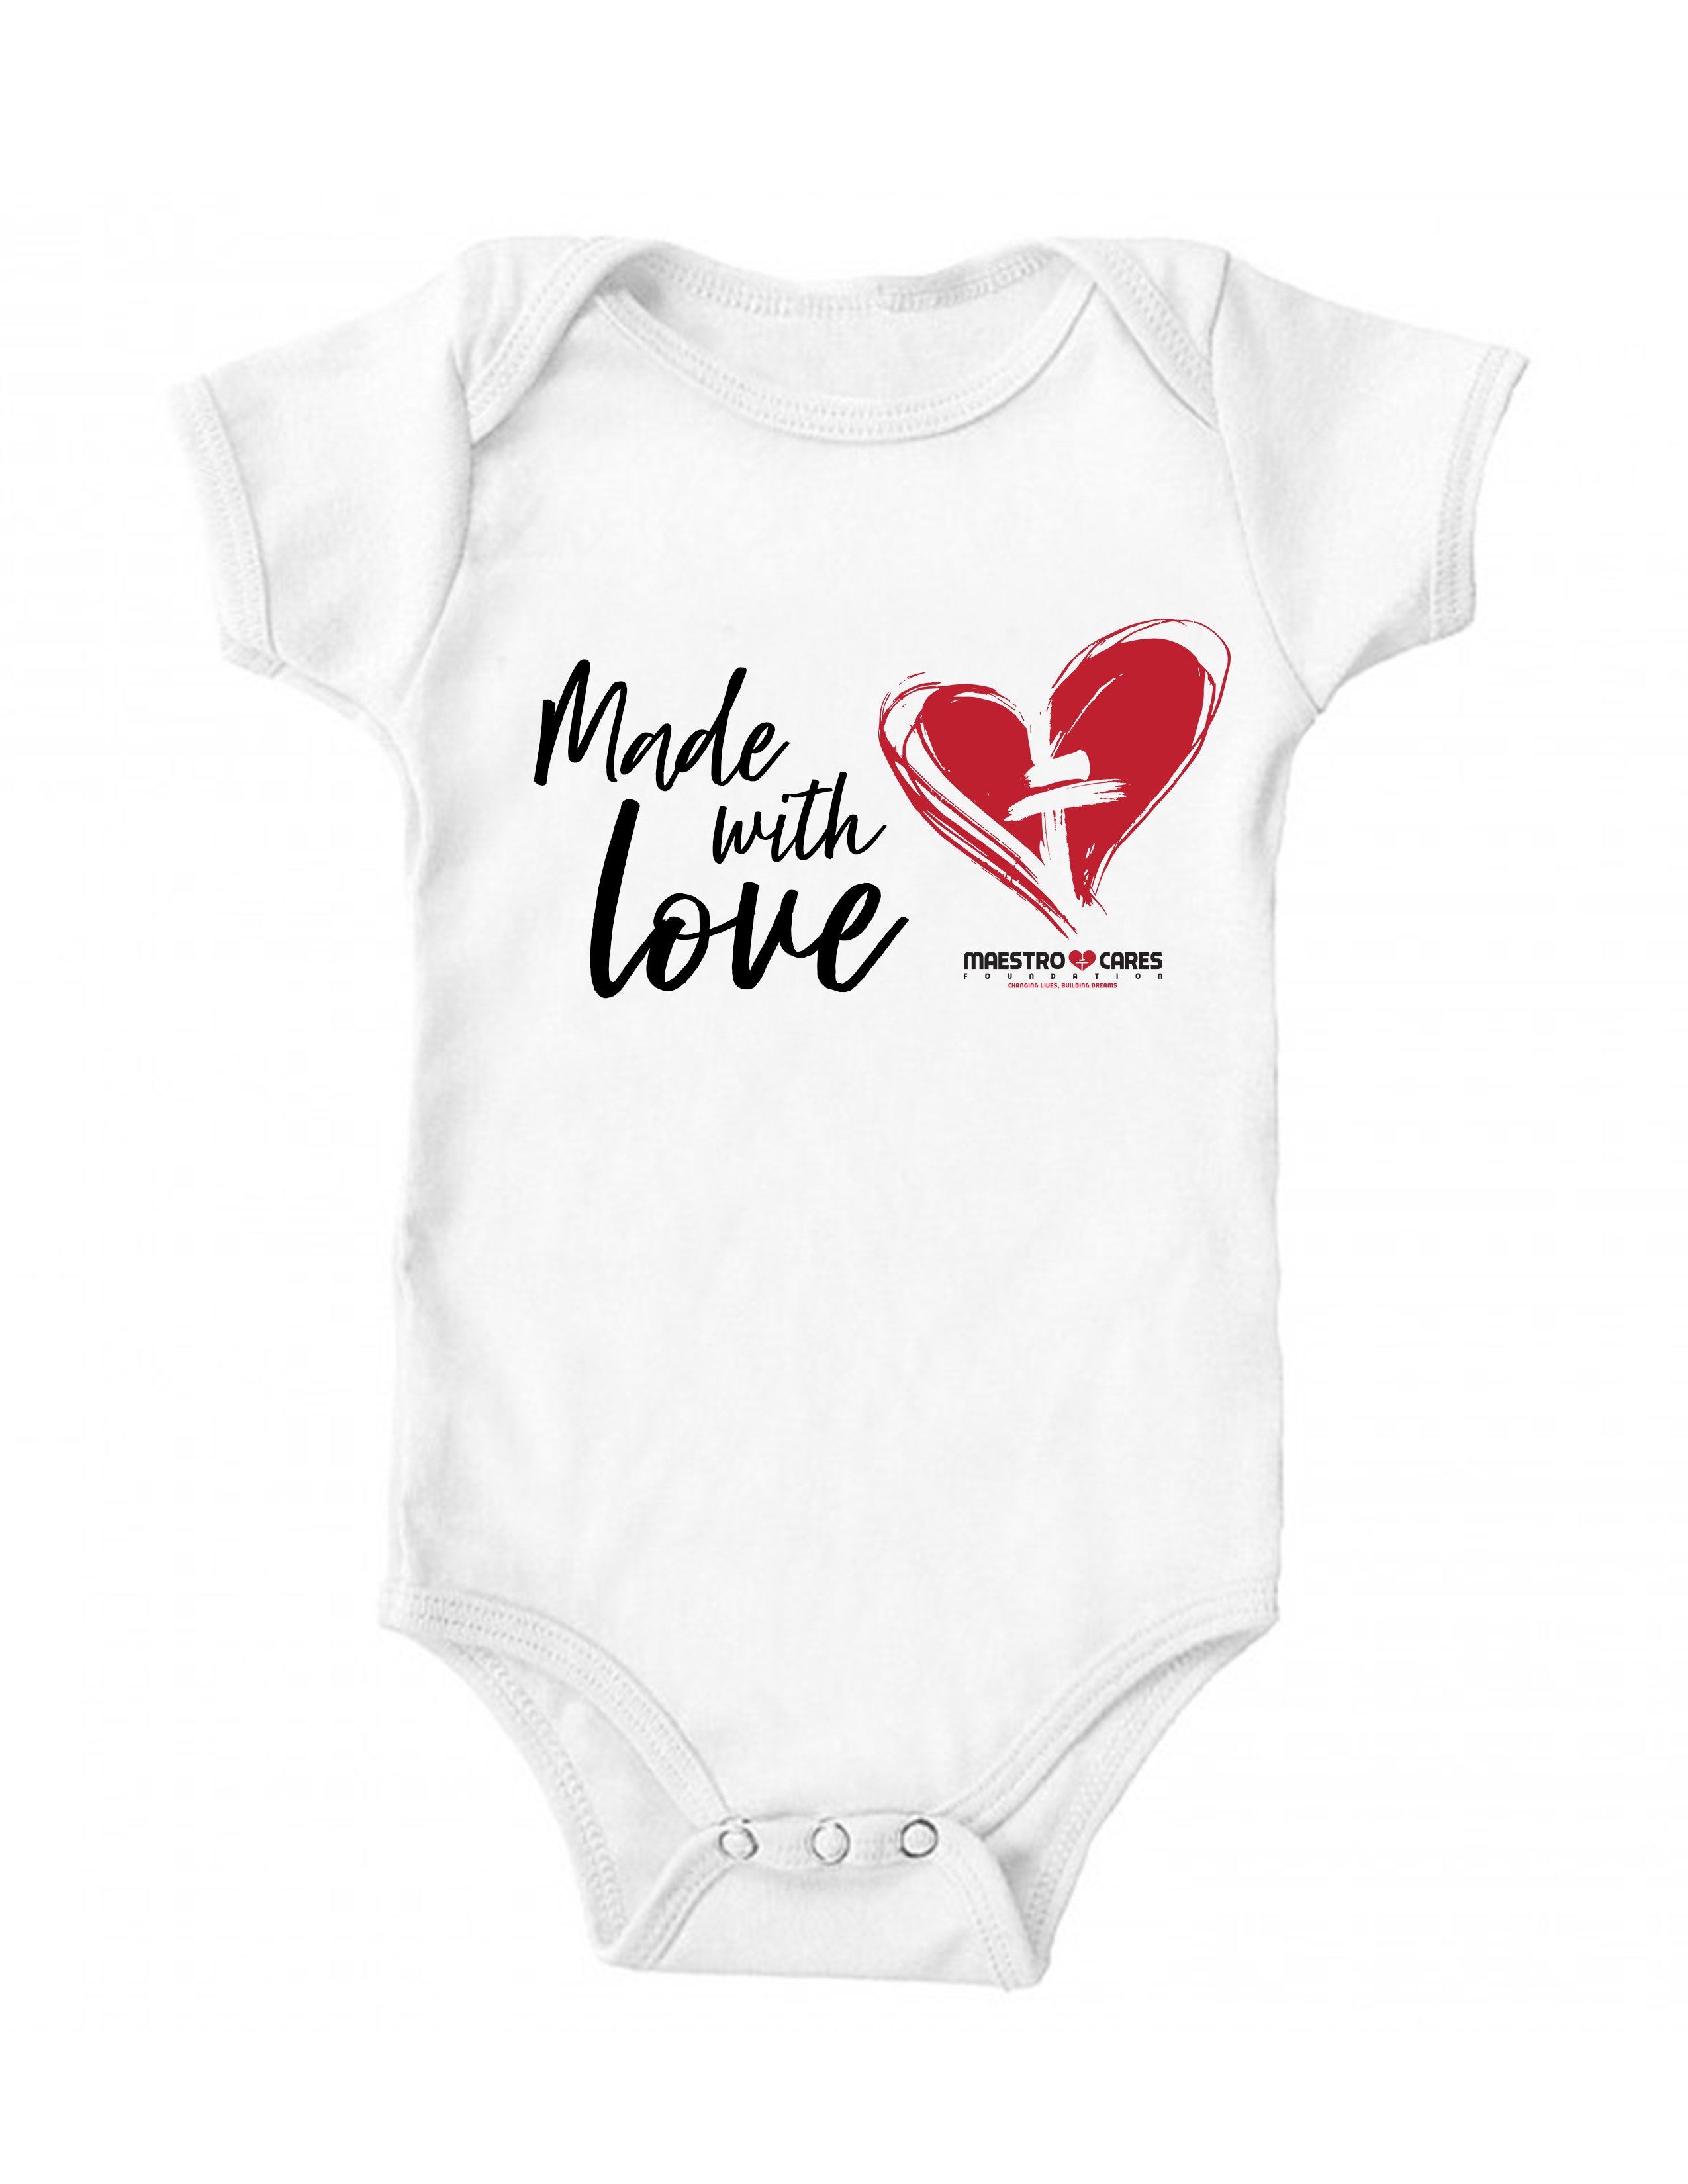 Made with love - Baby Onesie